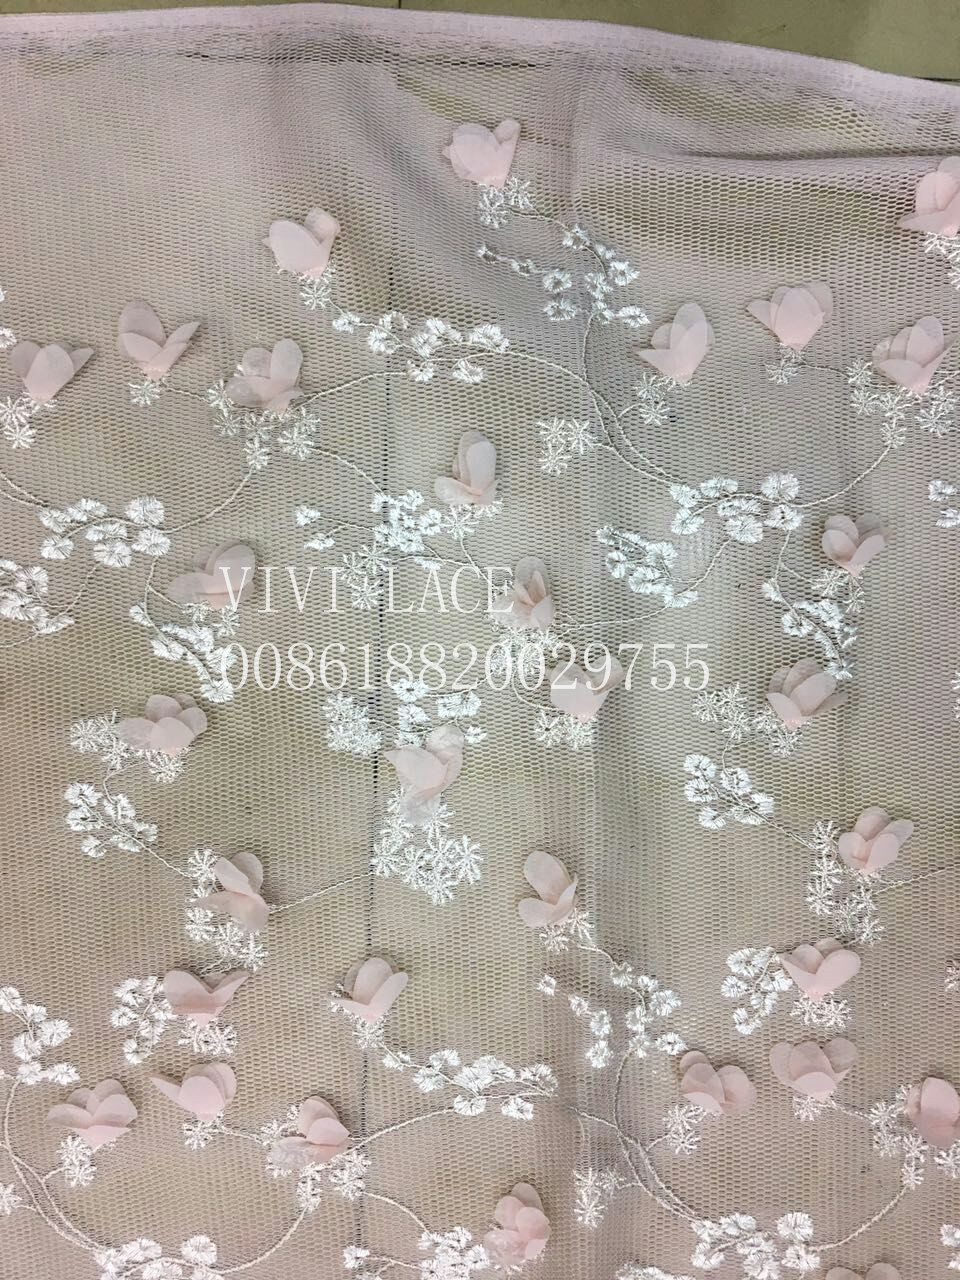 5 yards  xl001 # pink chiffon flower double air net lace fabric for wedding dress sawing/party dress/occassion thumbnail